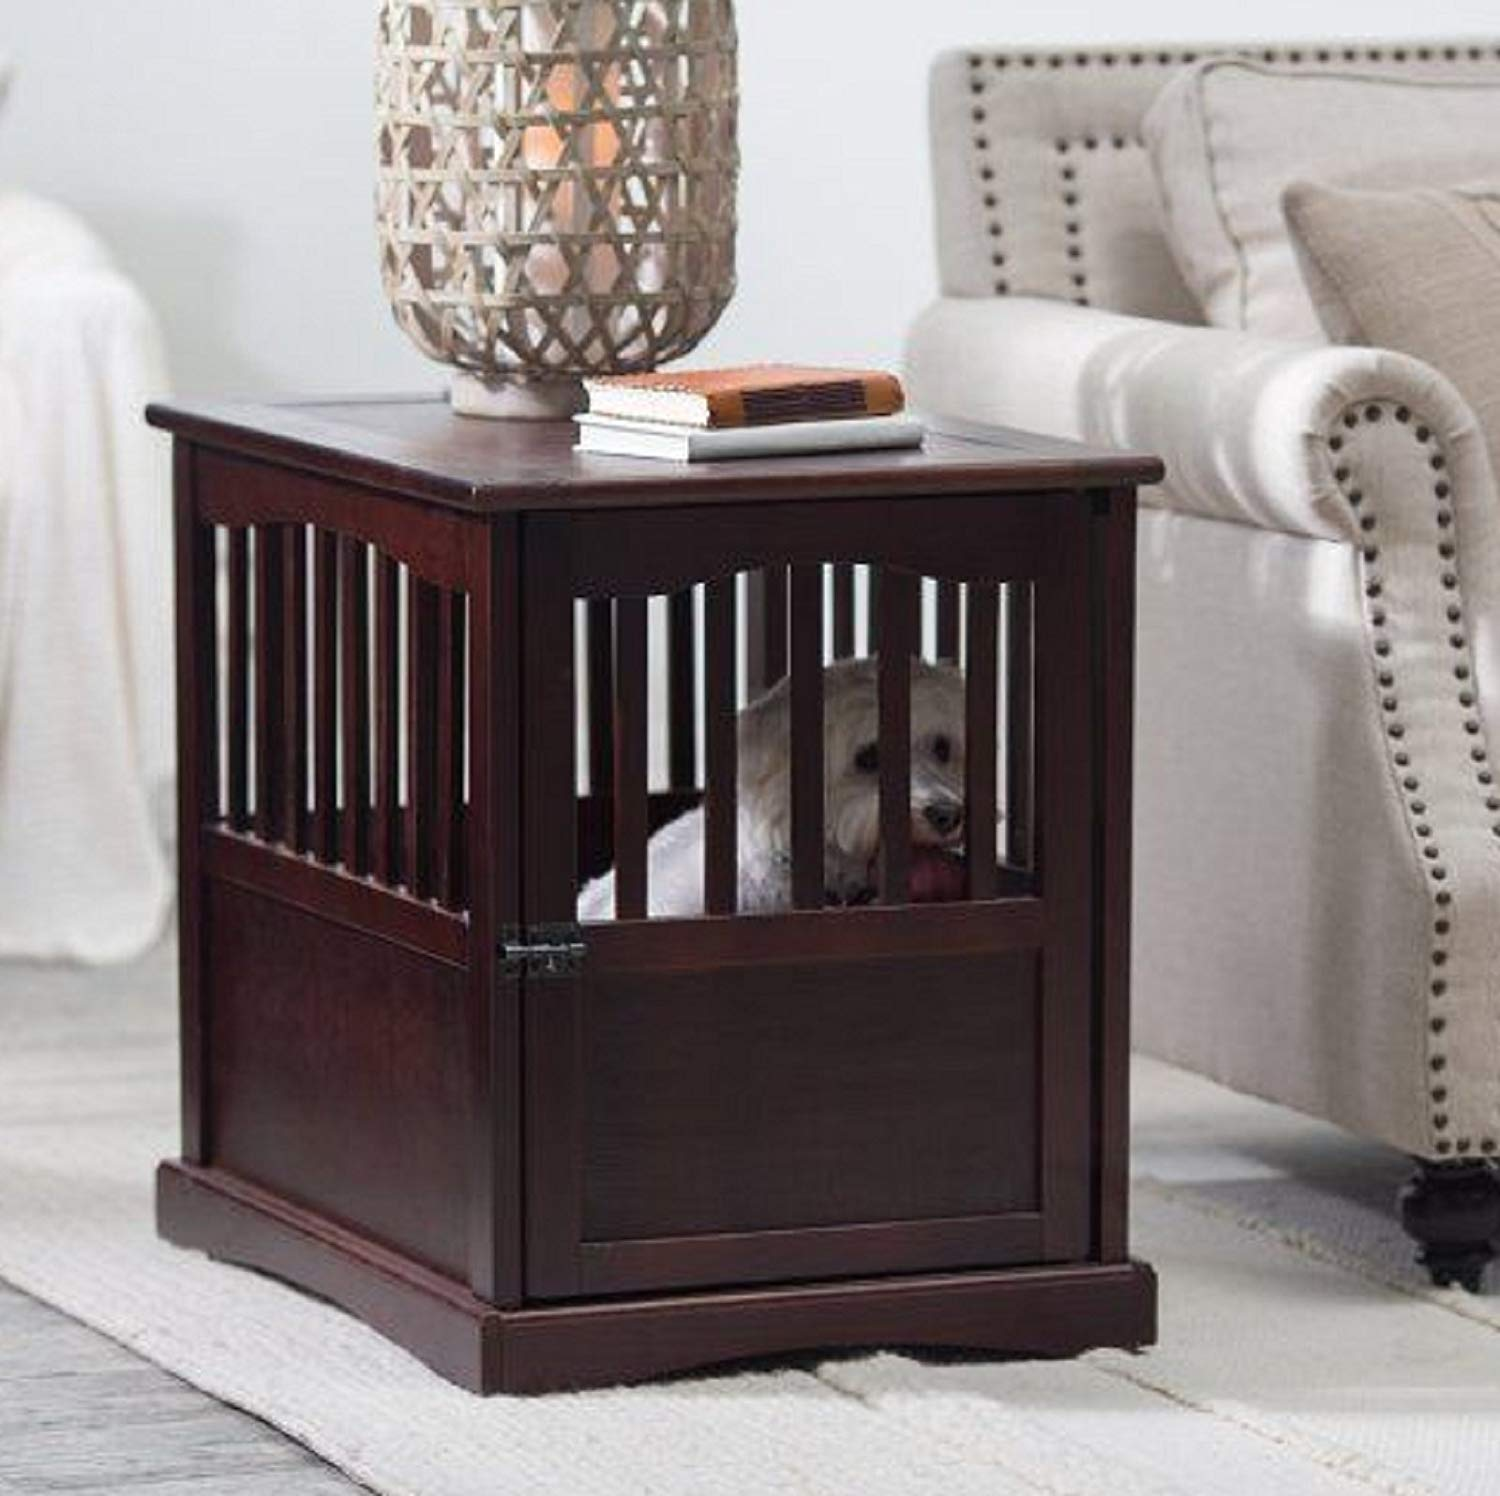 new wooden pet crate end table kennel cage furniture dog pen indoor house small supplies wood top for coffee laura ashley canopy ott beds dark tan leather sofa bright colored